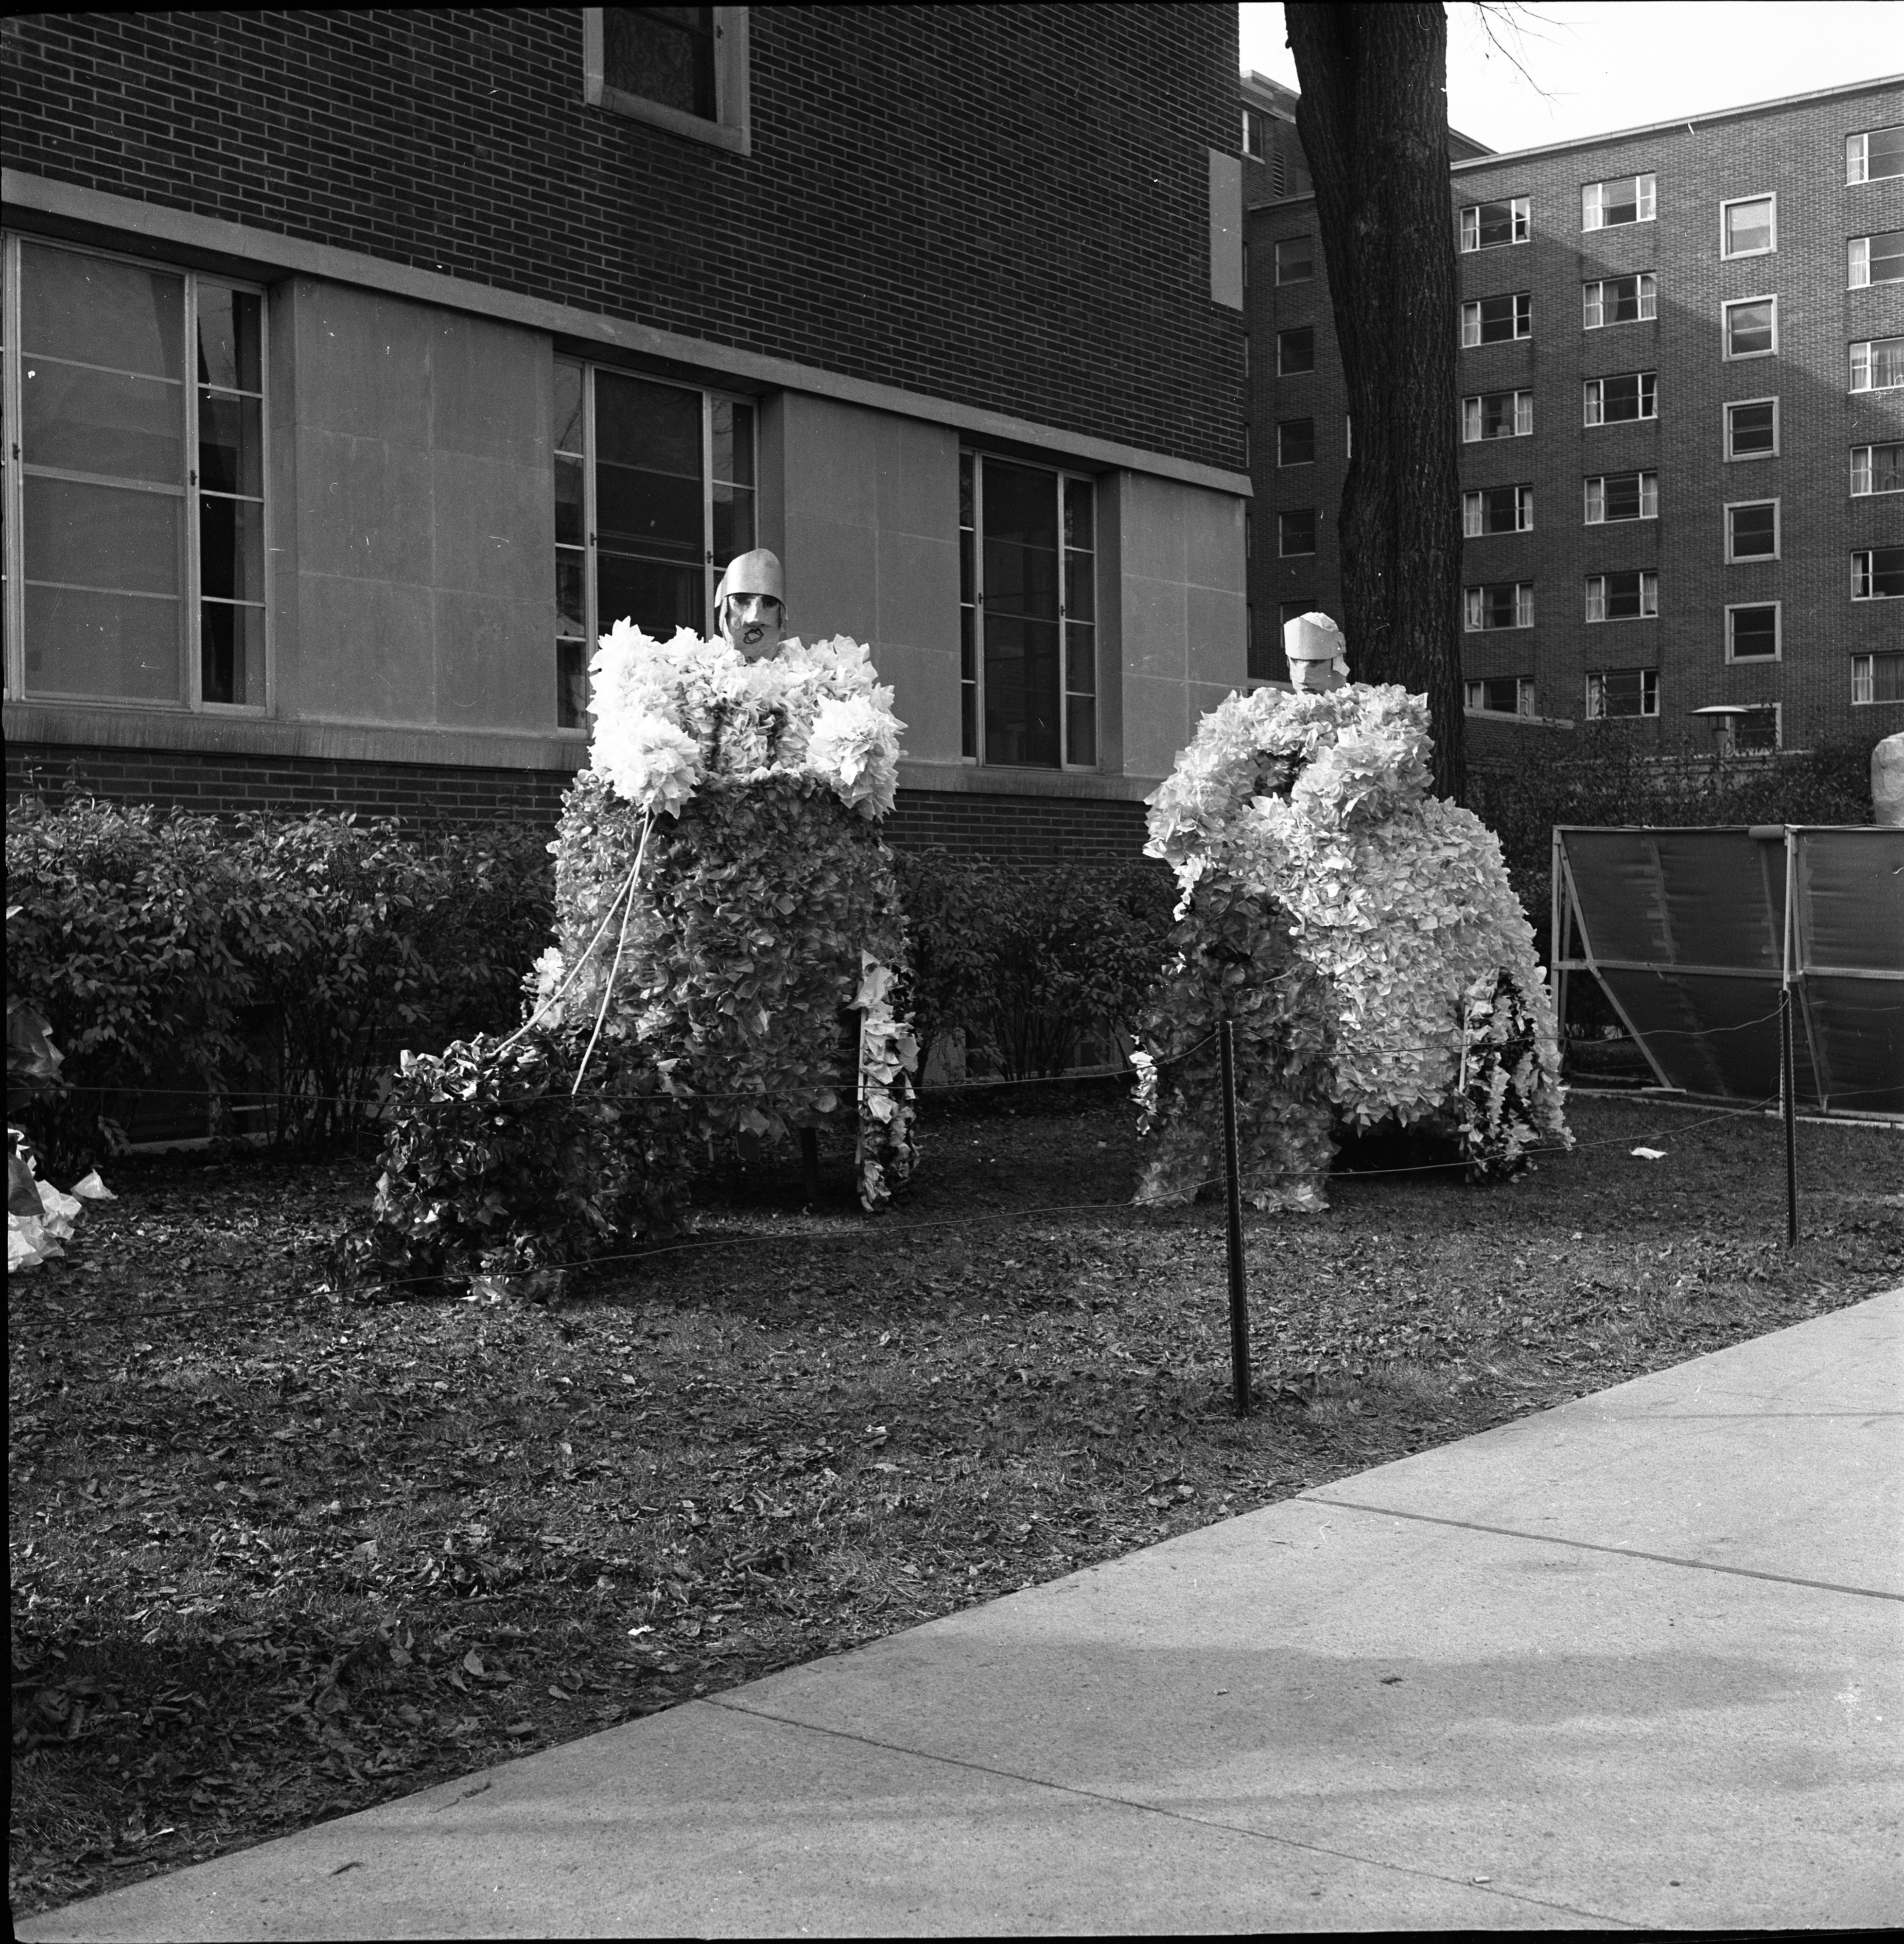 University of Michigan Homecoming Display, With Men On Chariots, October 1960 image